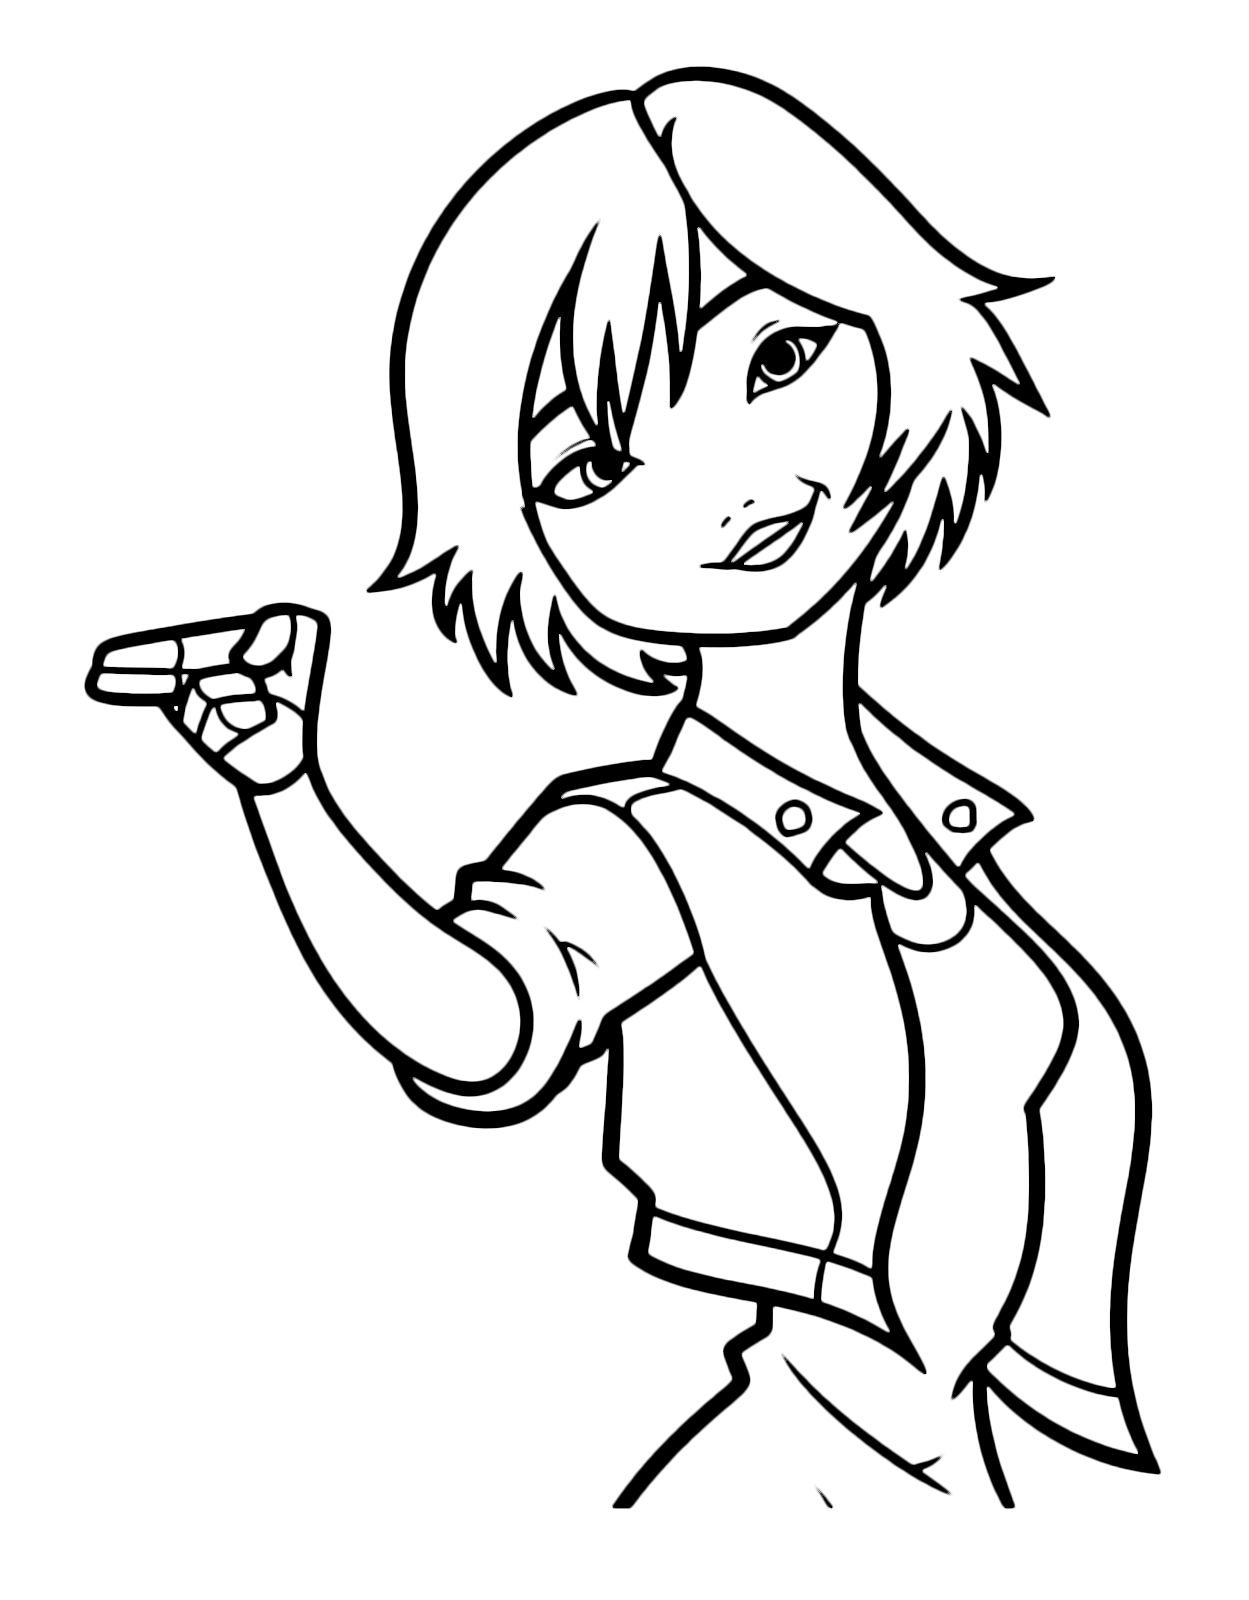 Big Hero 6 Characters Gogo Tomago Coloring Page | Big hero 6 ... | 1600x1249